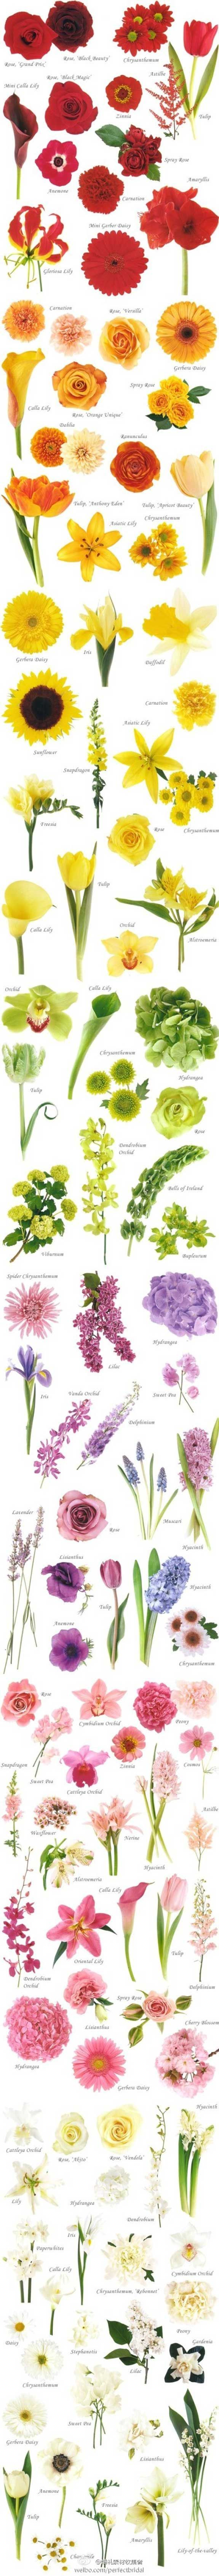 Picking Your 'Wedding' Flowers- great guide for color and names